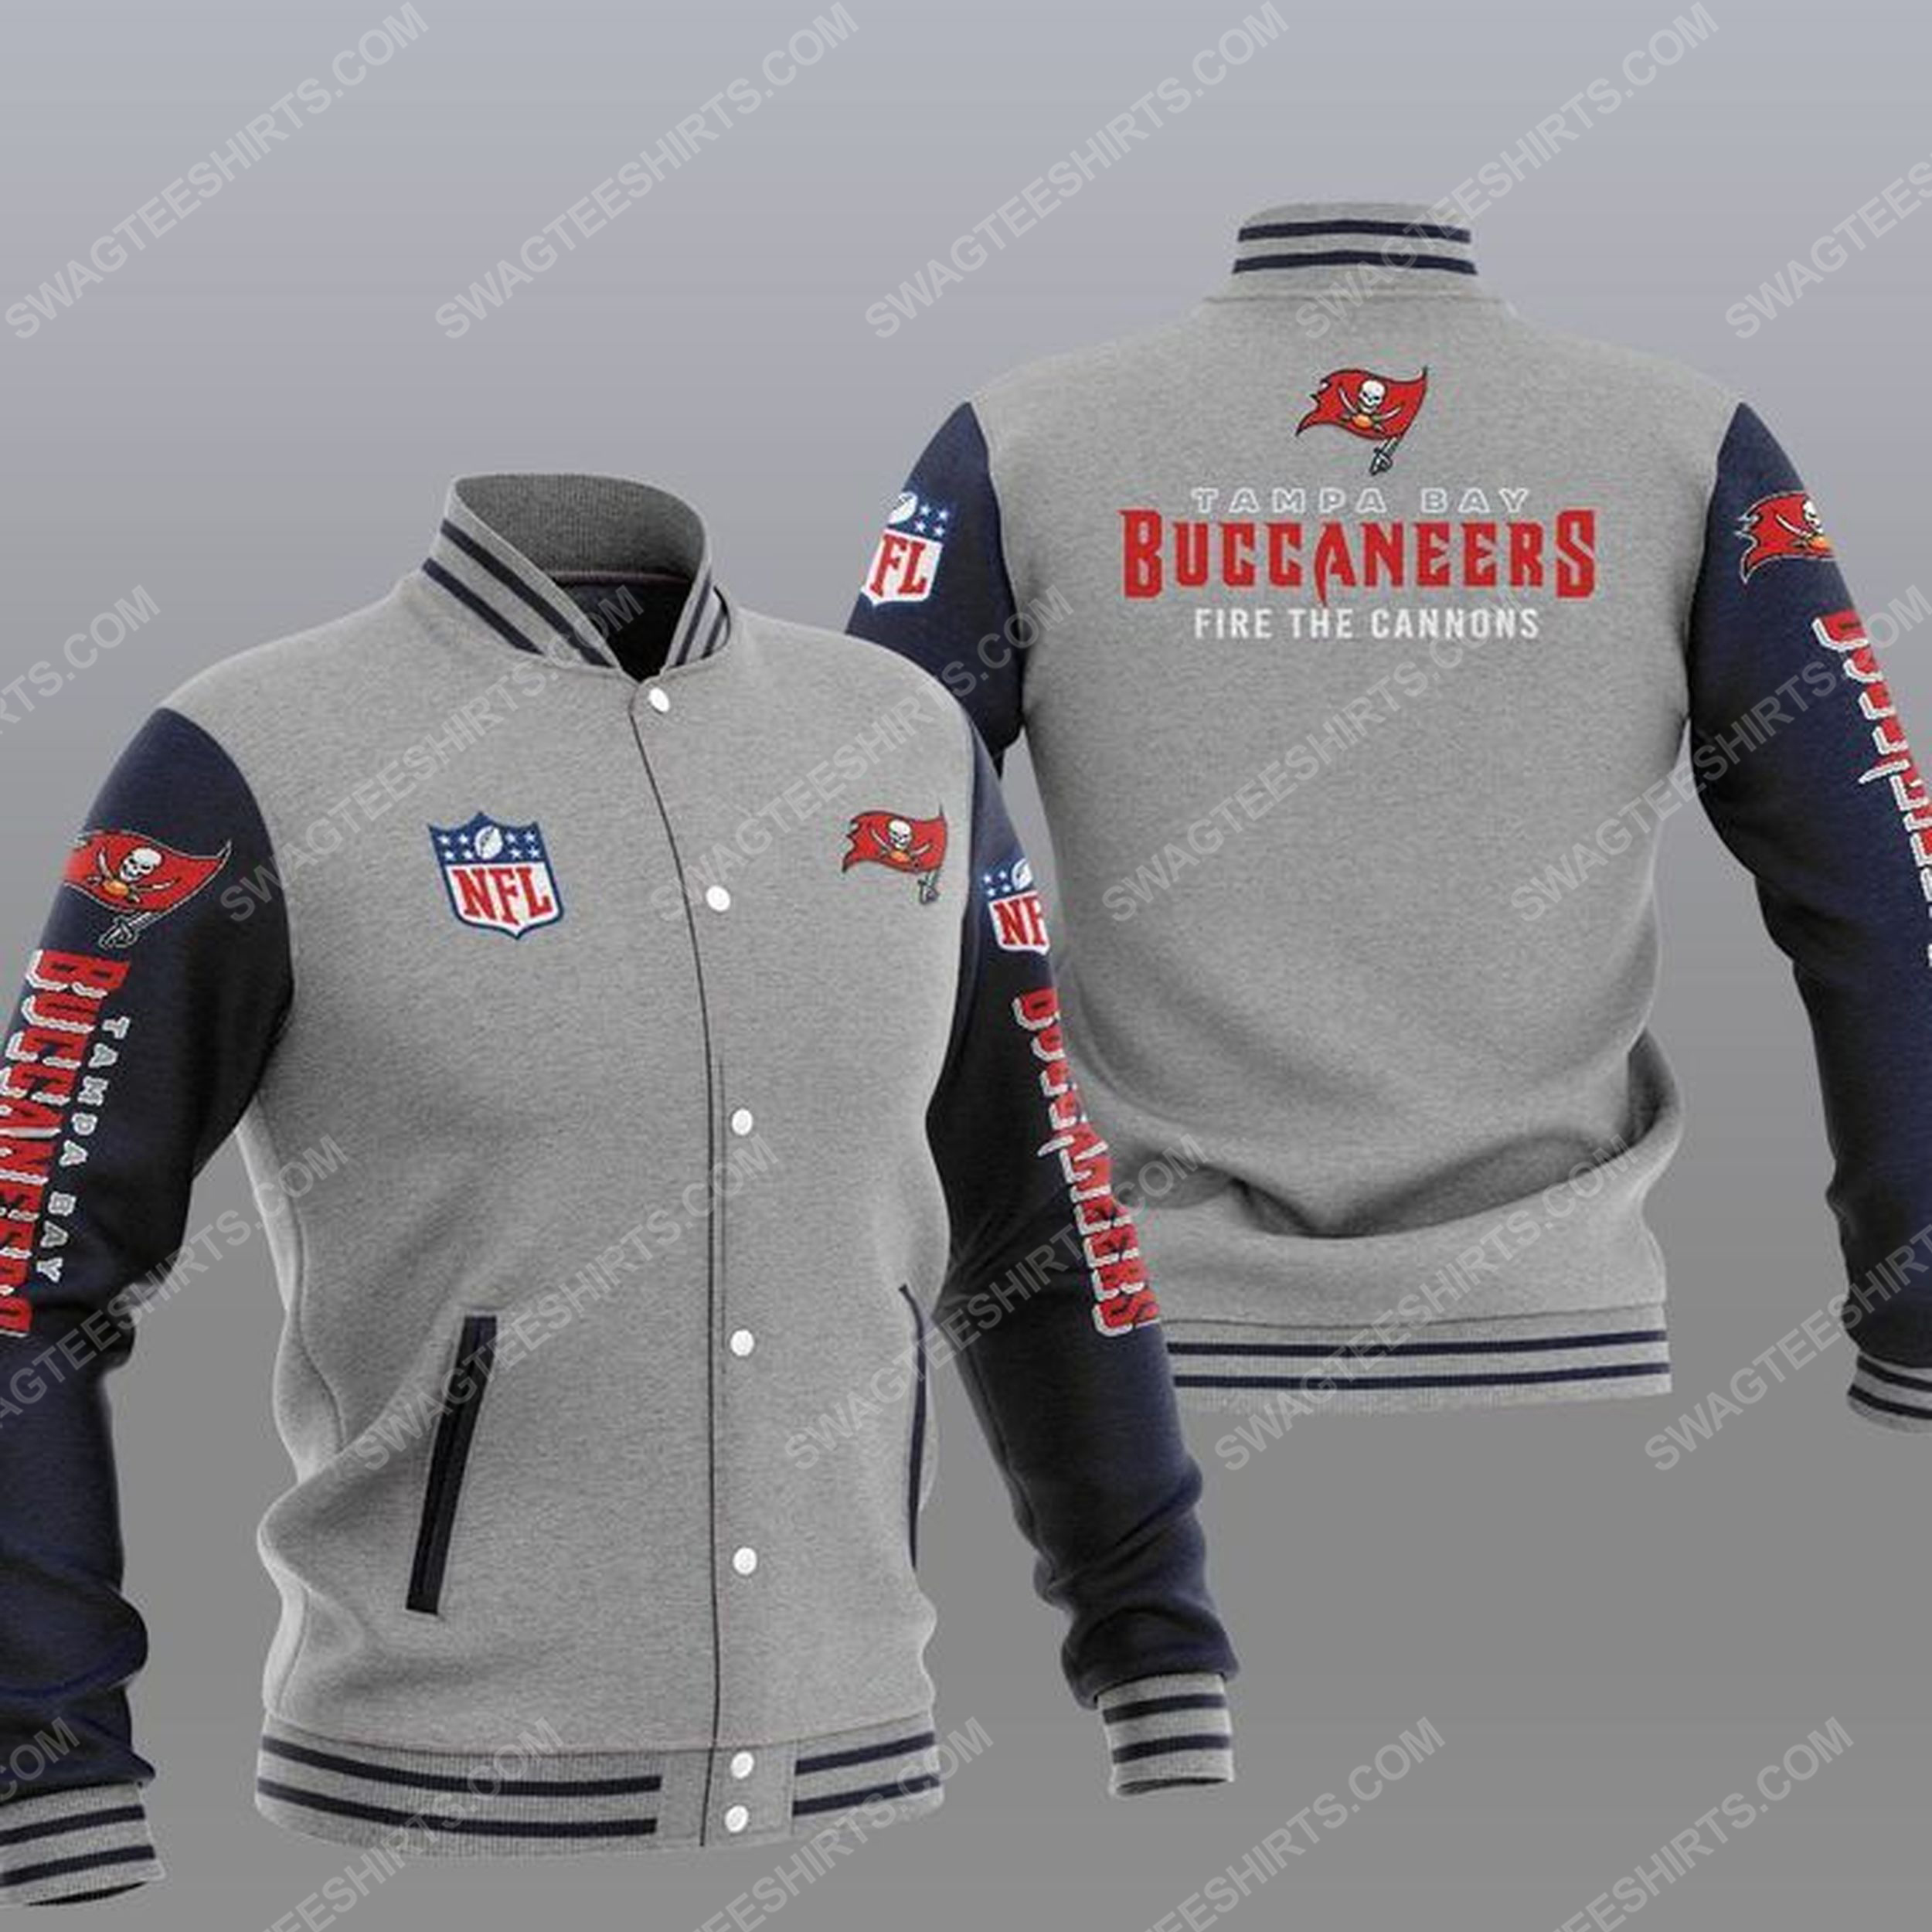 Tampa bay buccaneers fire the cannons all over print baseball jacket - gray 1